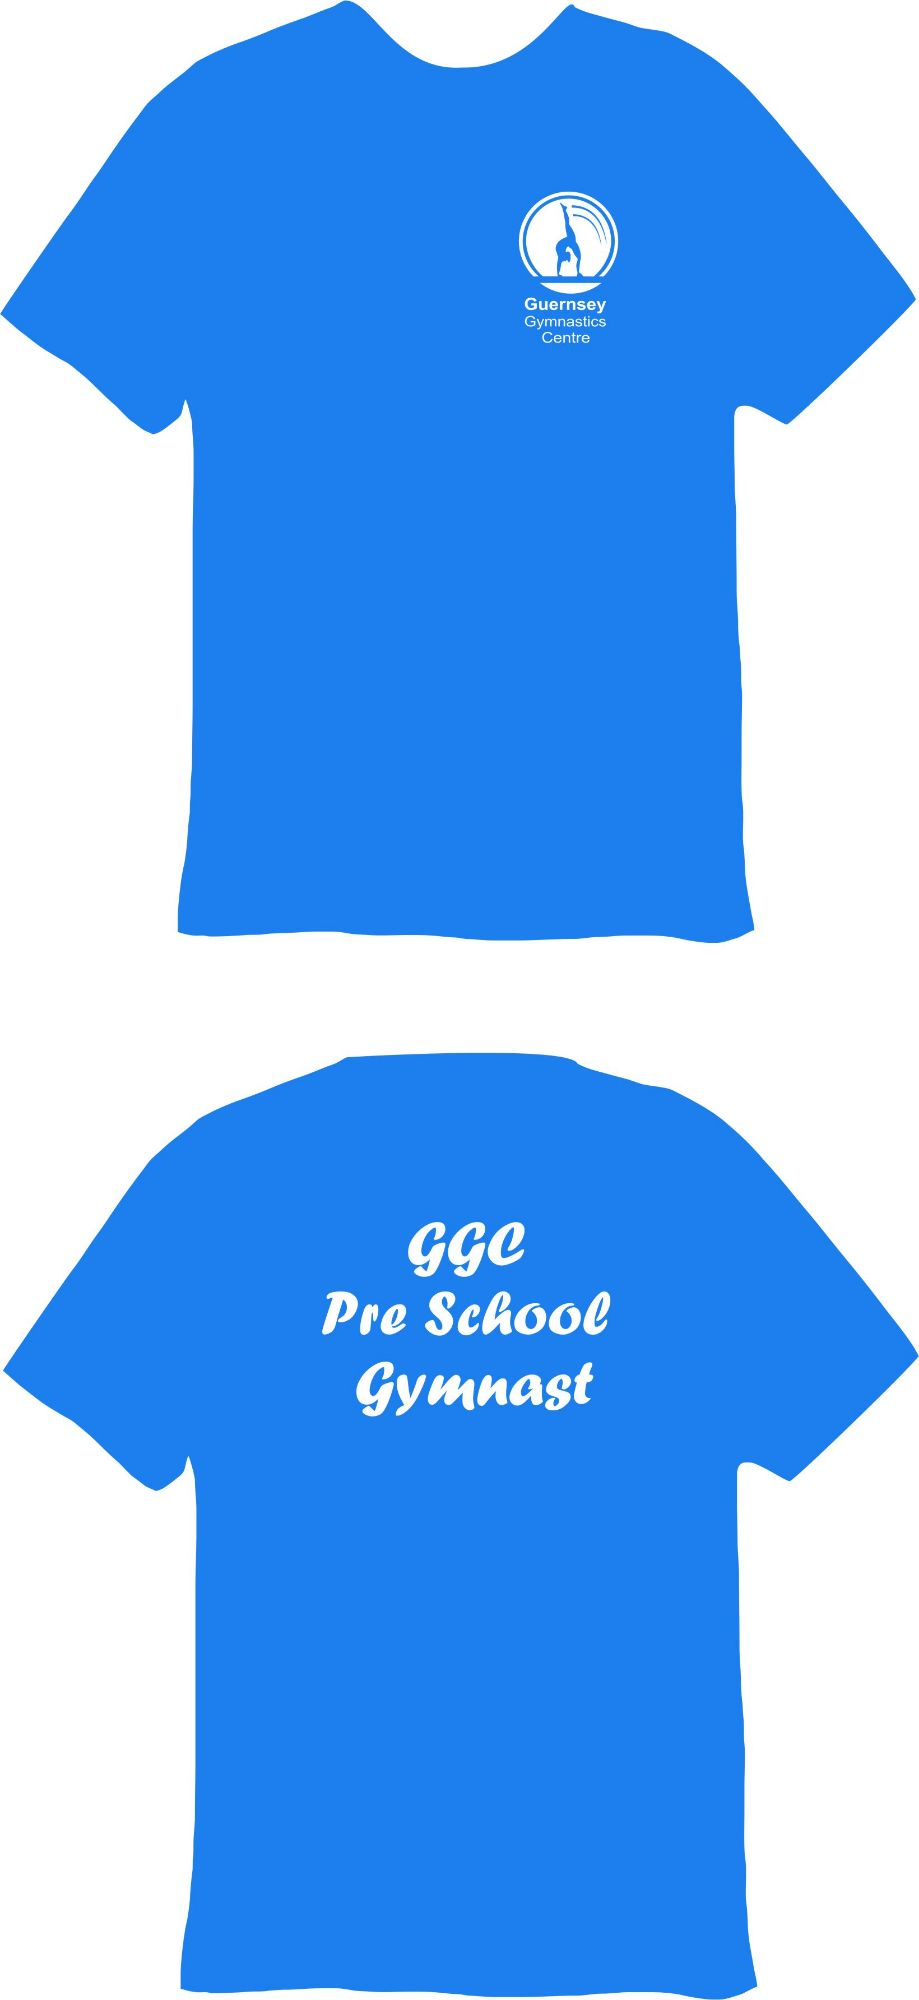 Guernsey Gymnastics Pres School Gymnast Technical T-Shirt